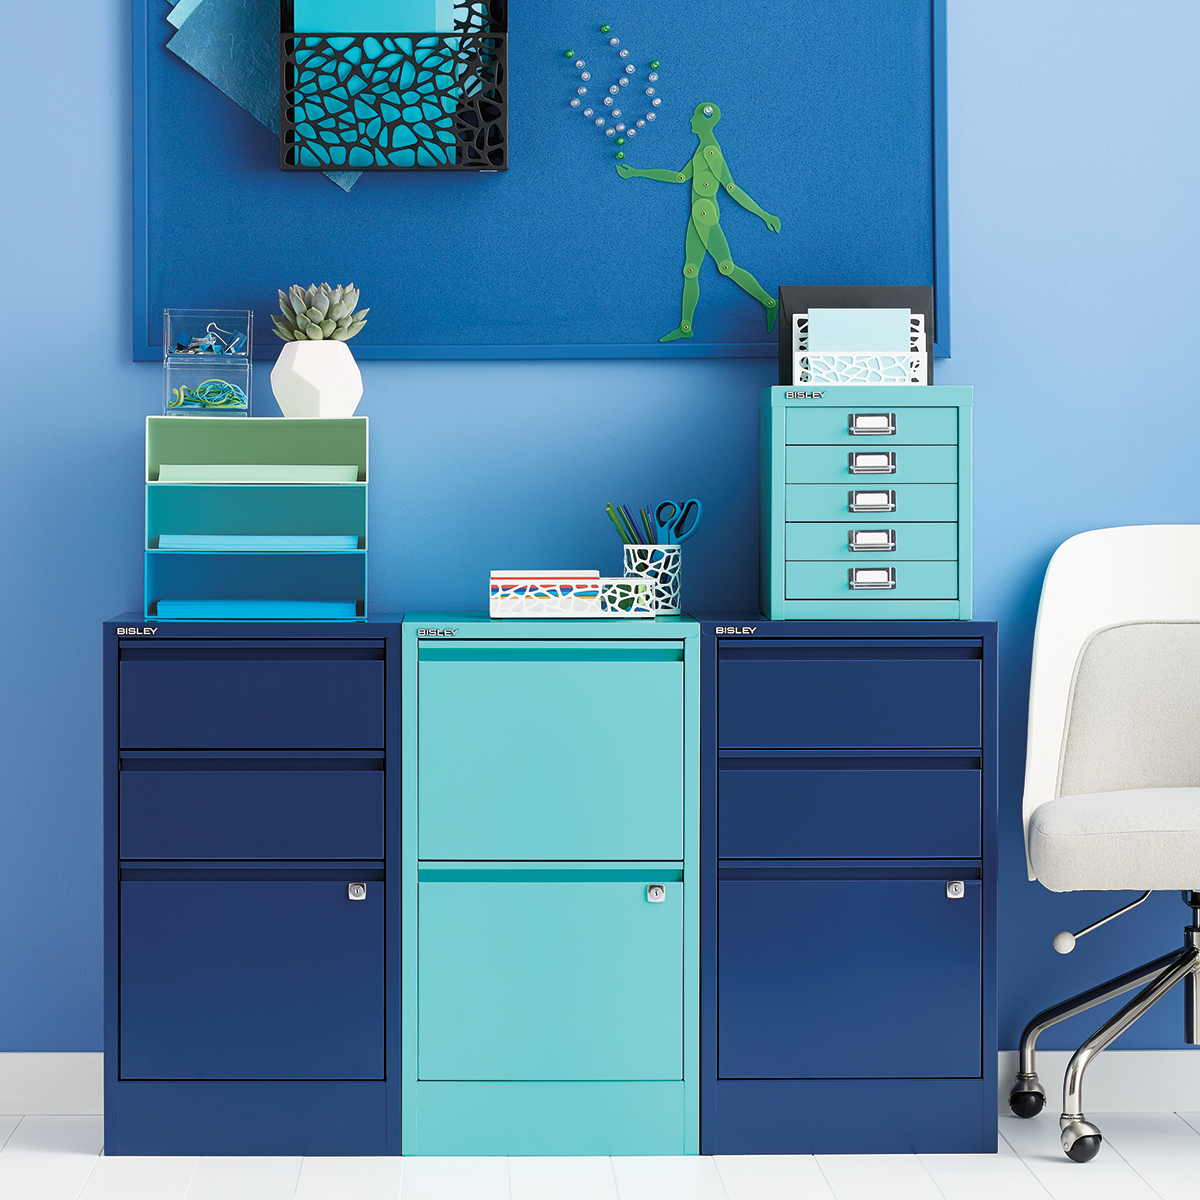 Oxford Blue Bisley 2- & 3-Drawer File Cabinets